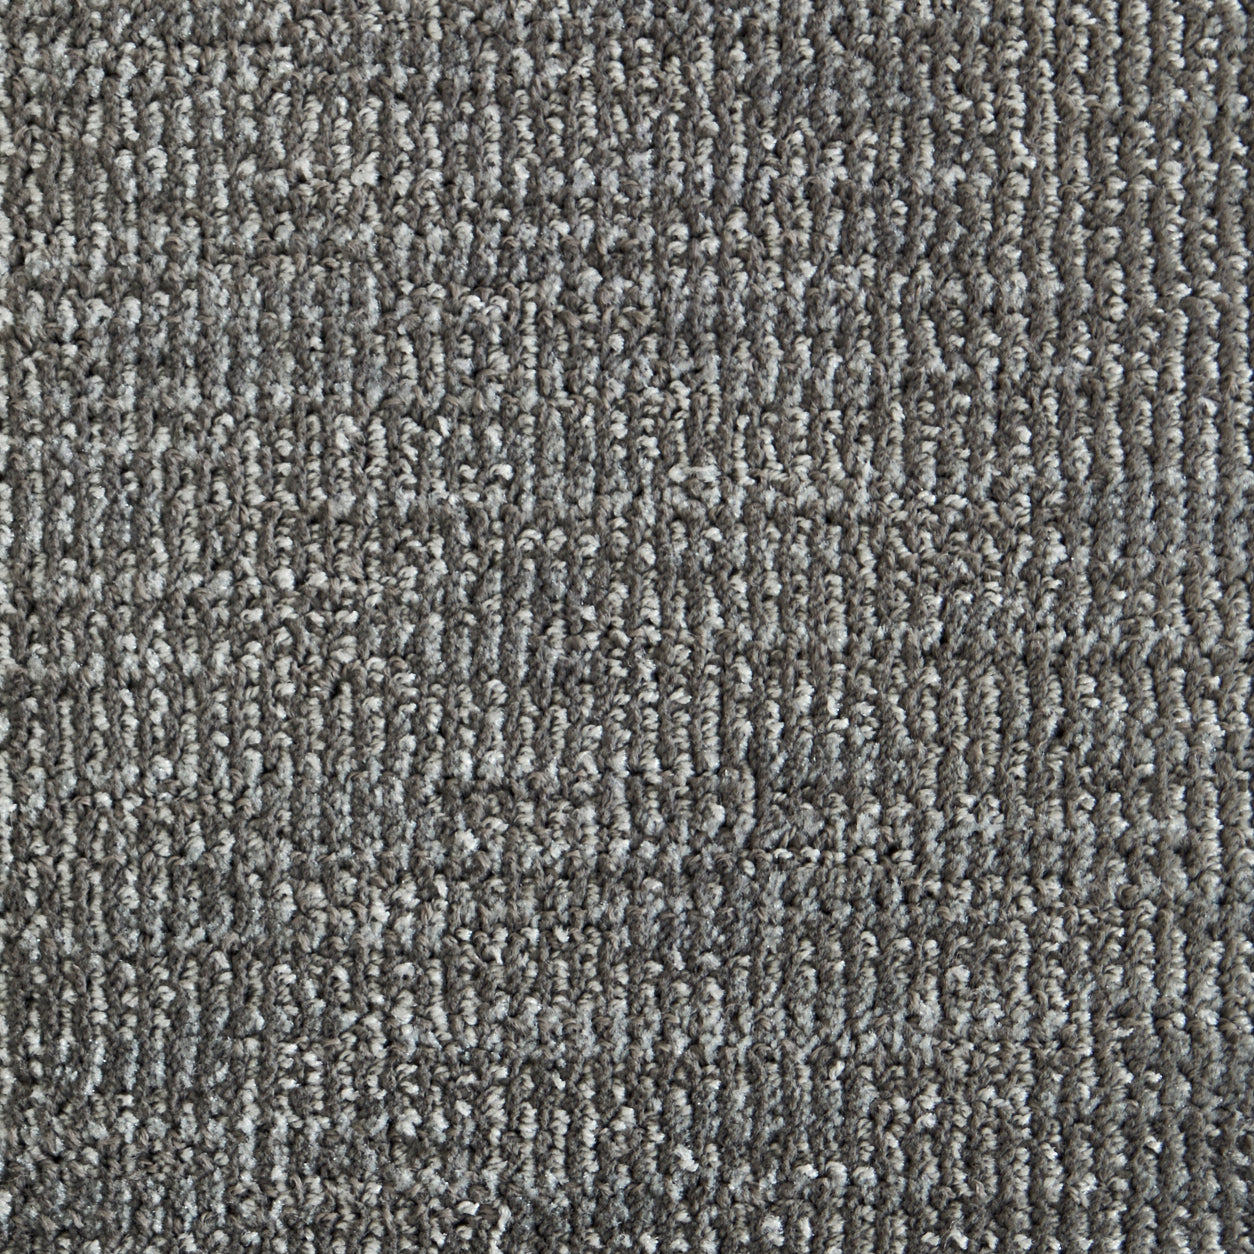 Migrate Tufted Custom Rug - Metal